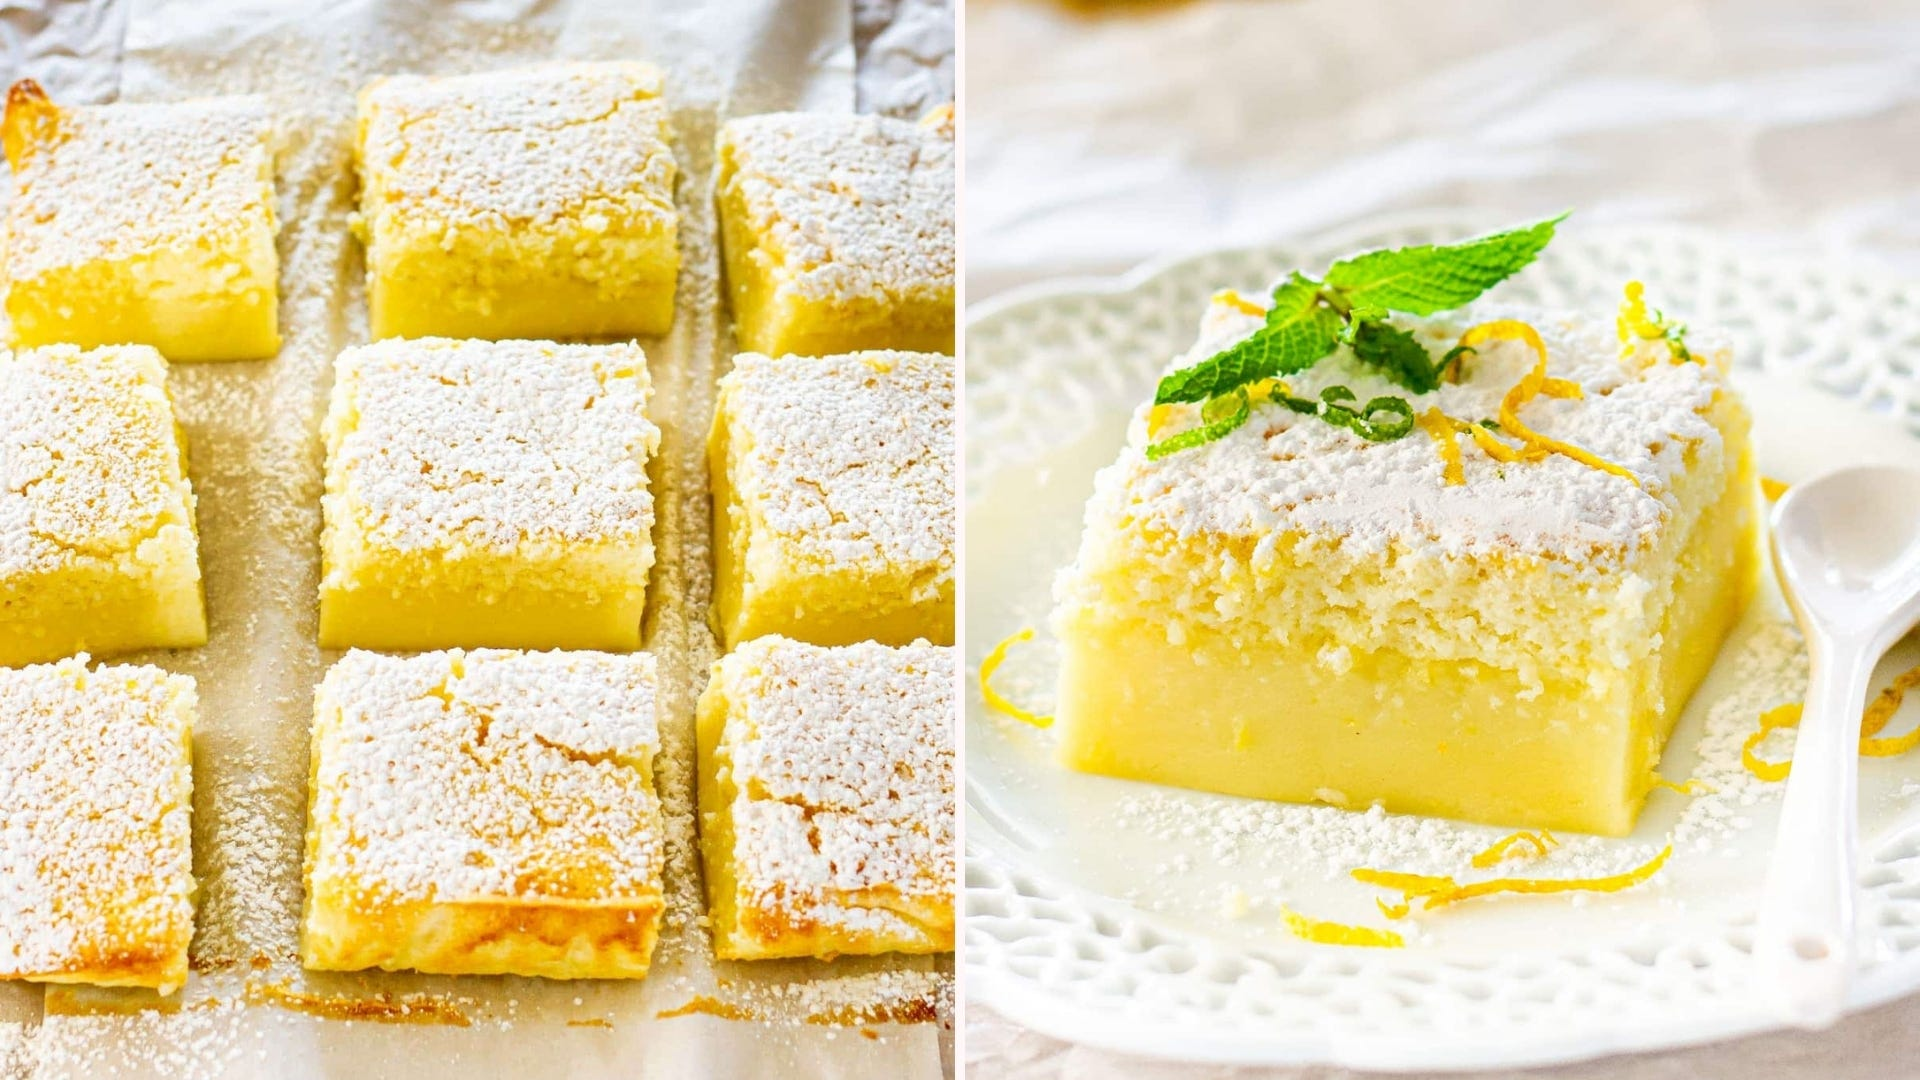 Slices of lemon cake with three layers